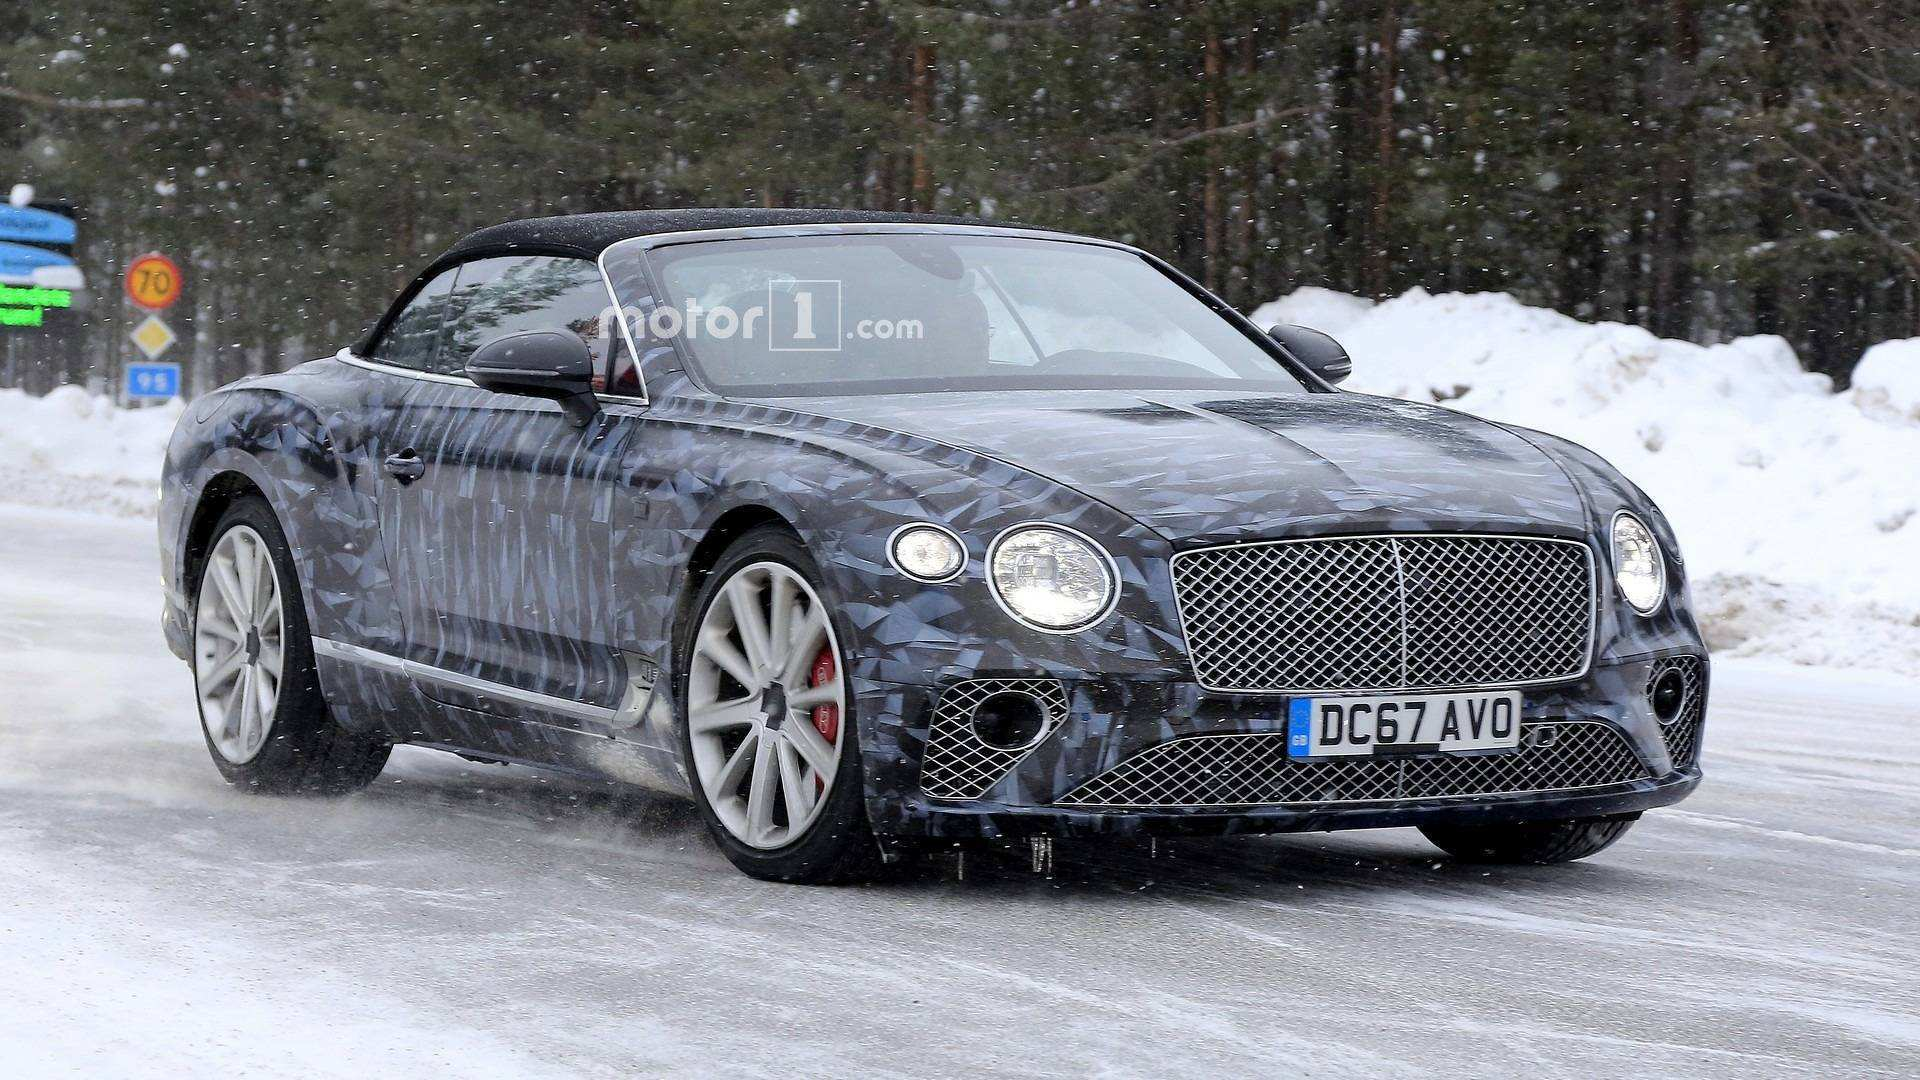 62 All New 2019 Bentley Continental Gt V8 History by 2019 Bentley Continental Gt V8